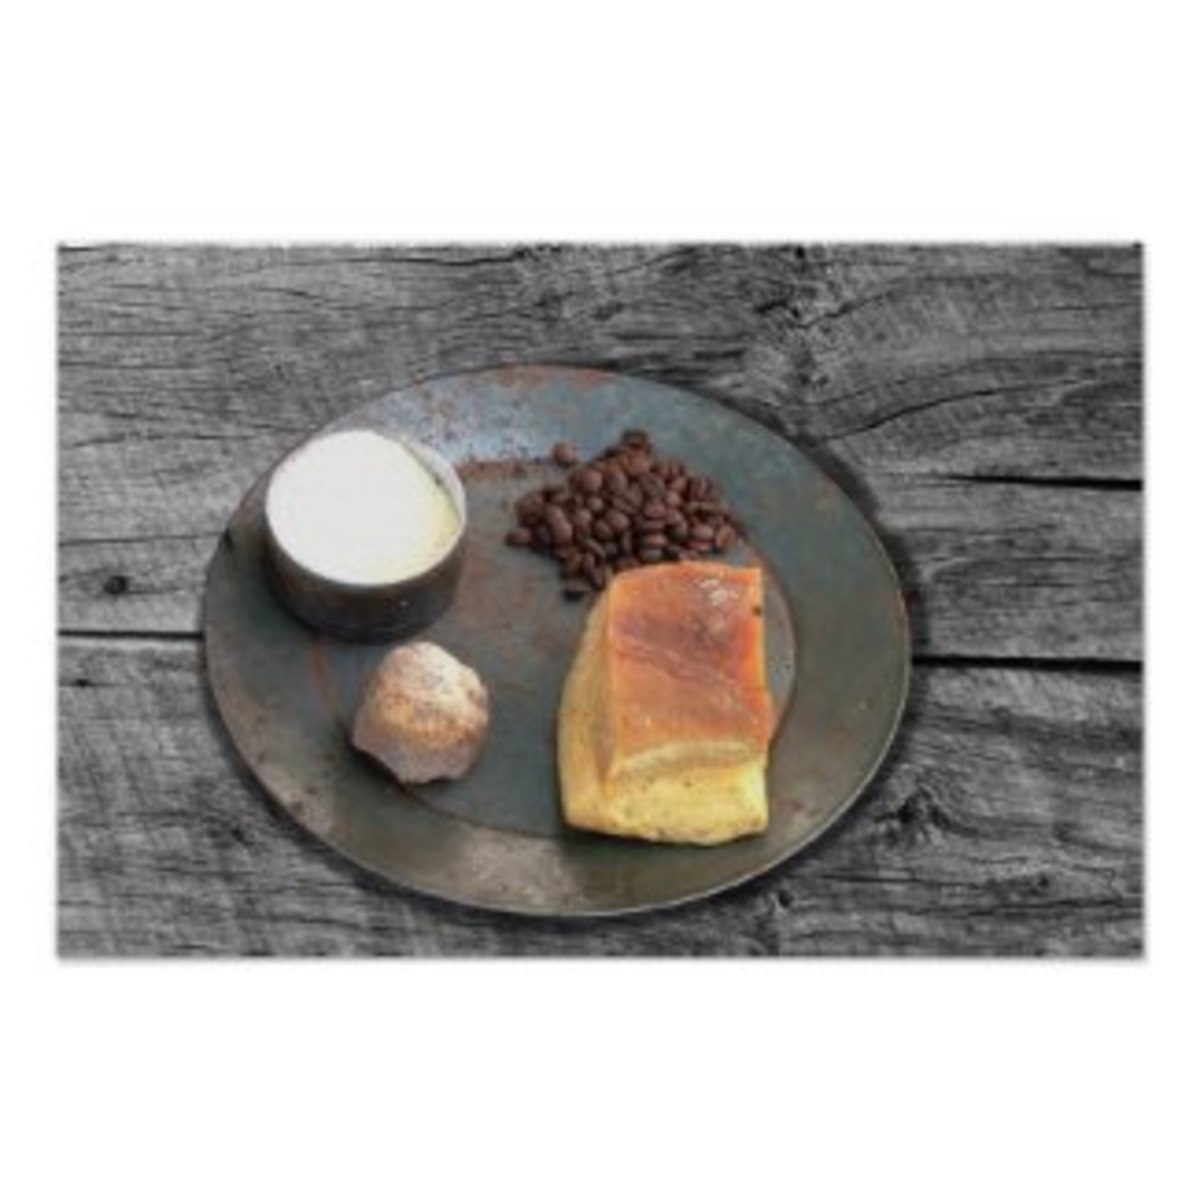 Photo from Zazzle: Field Rations by bhbphotos